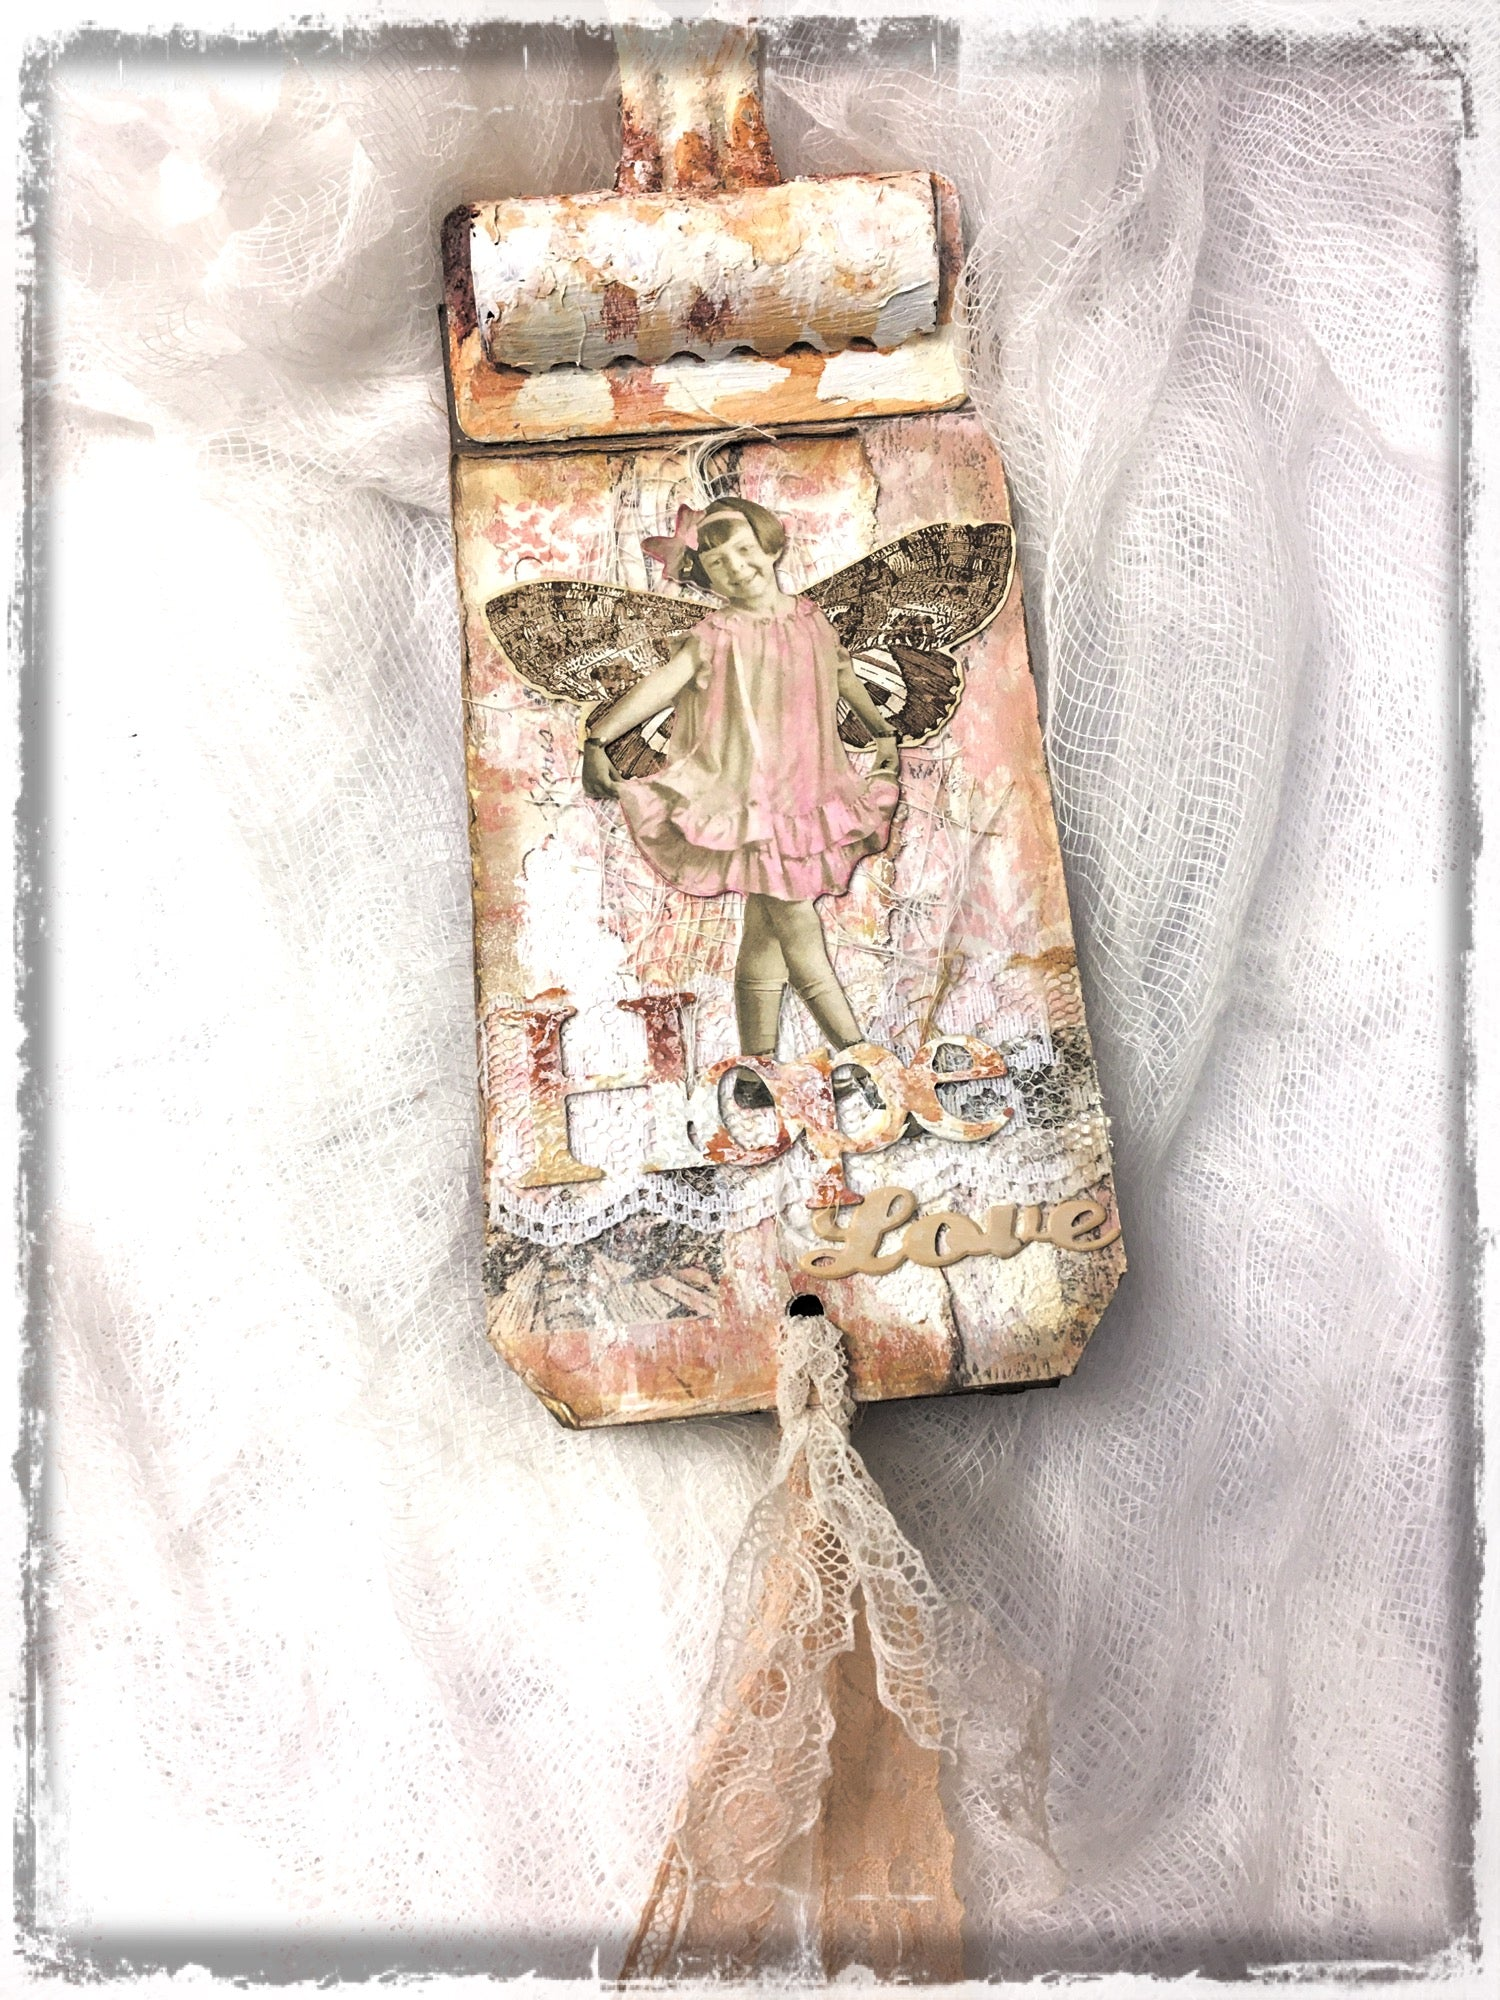 February scrapaholix kit continued: tag book by LOUISE CROSBIE